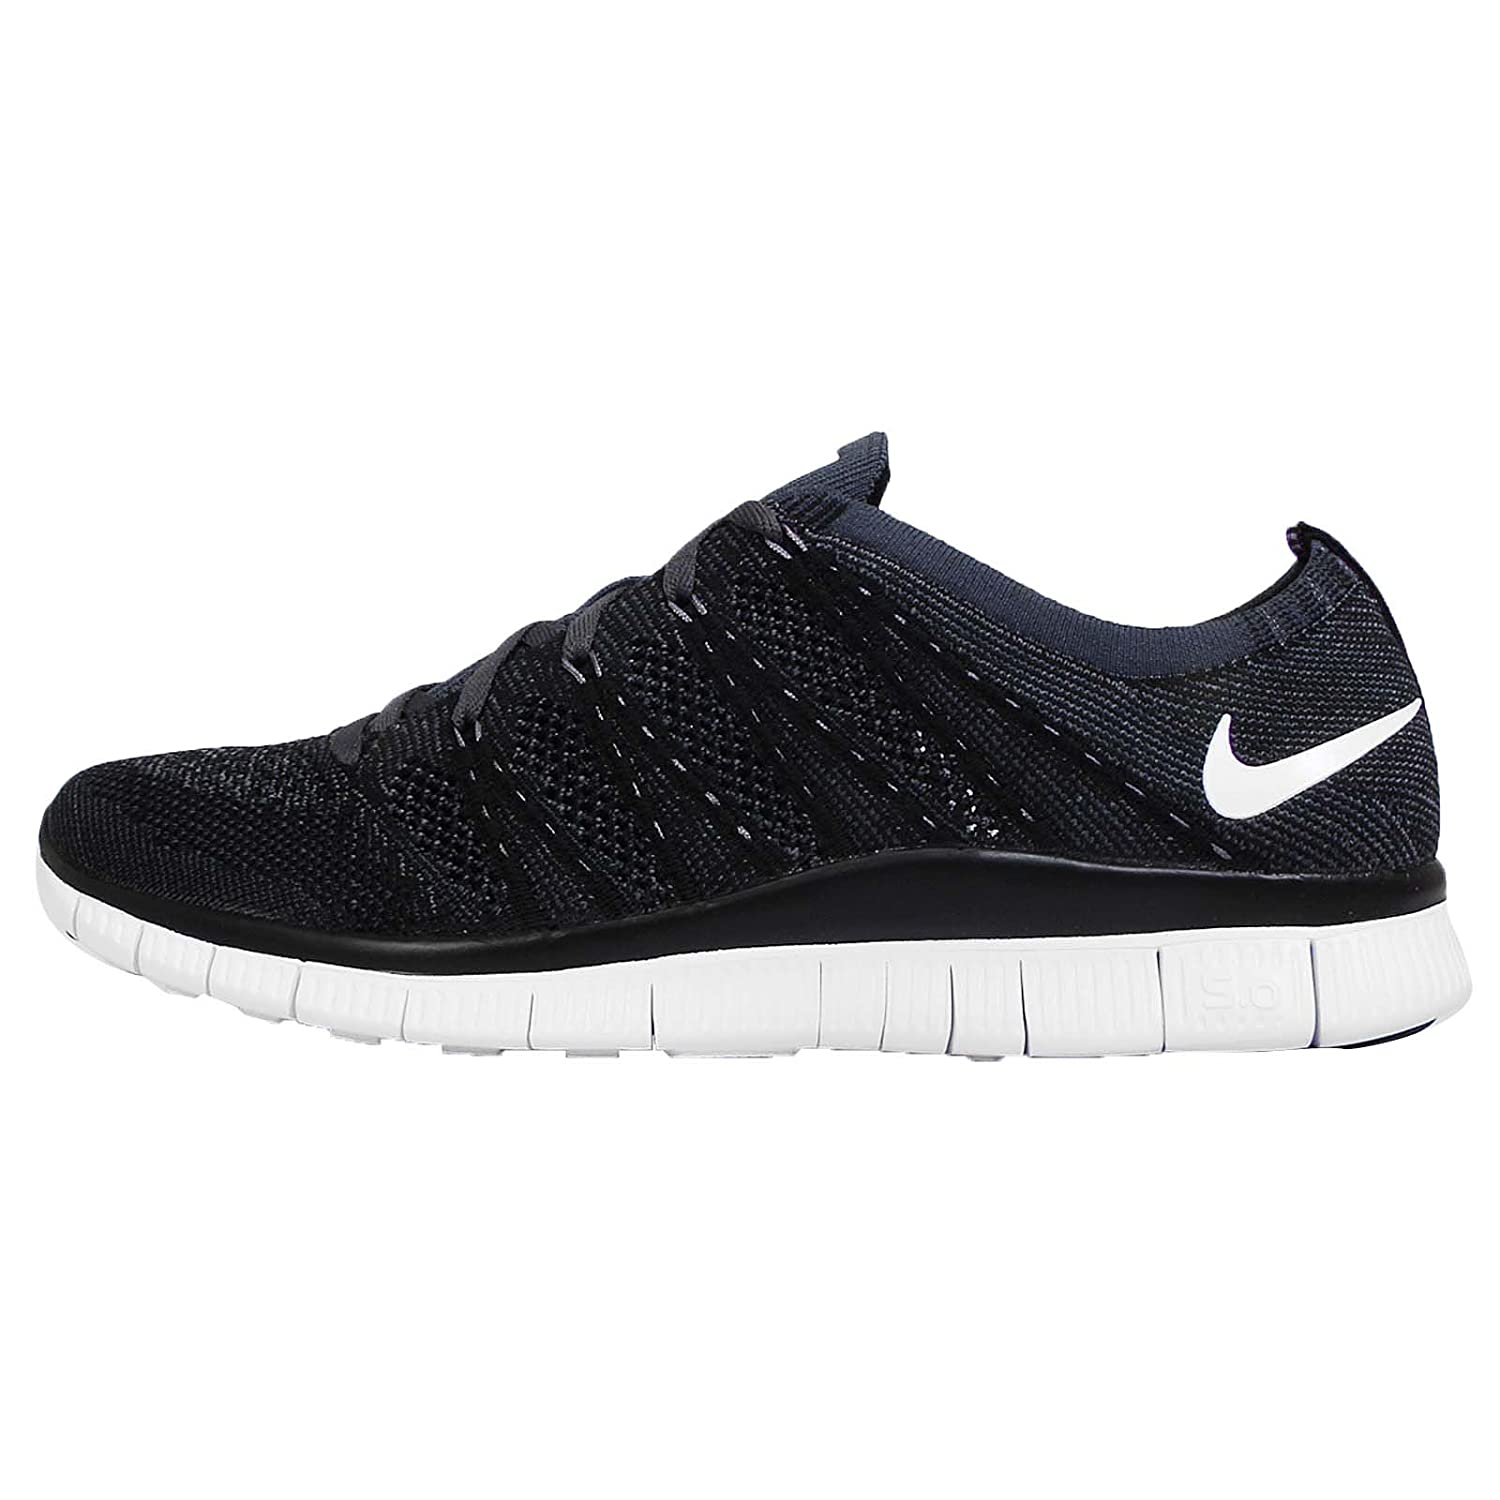 41d770caf3856 Nike Free Flyknit NSW 5.0 Mens Running Trainers Shoes Black Anthracite  (UK-6 EUR-40 US-7)  Amazon.co.uk  Shoes   Bags